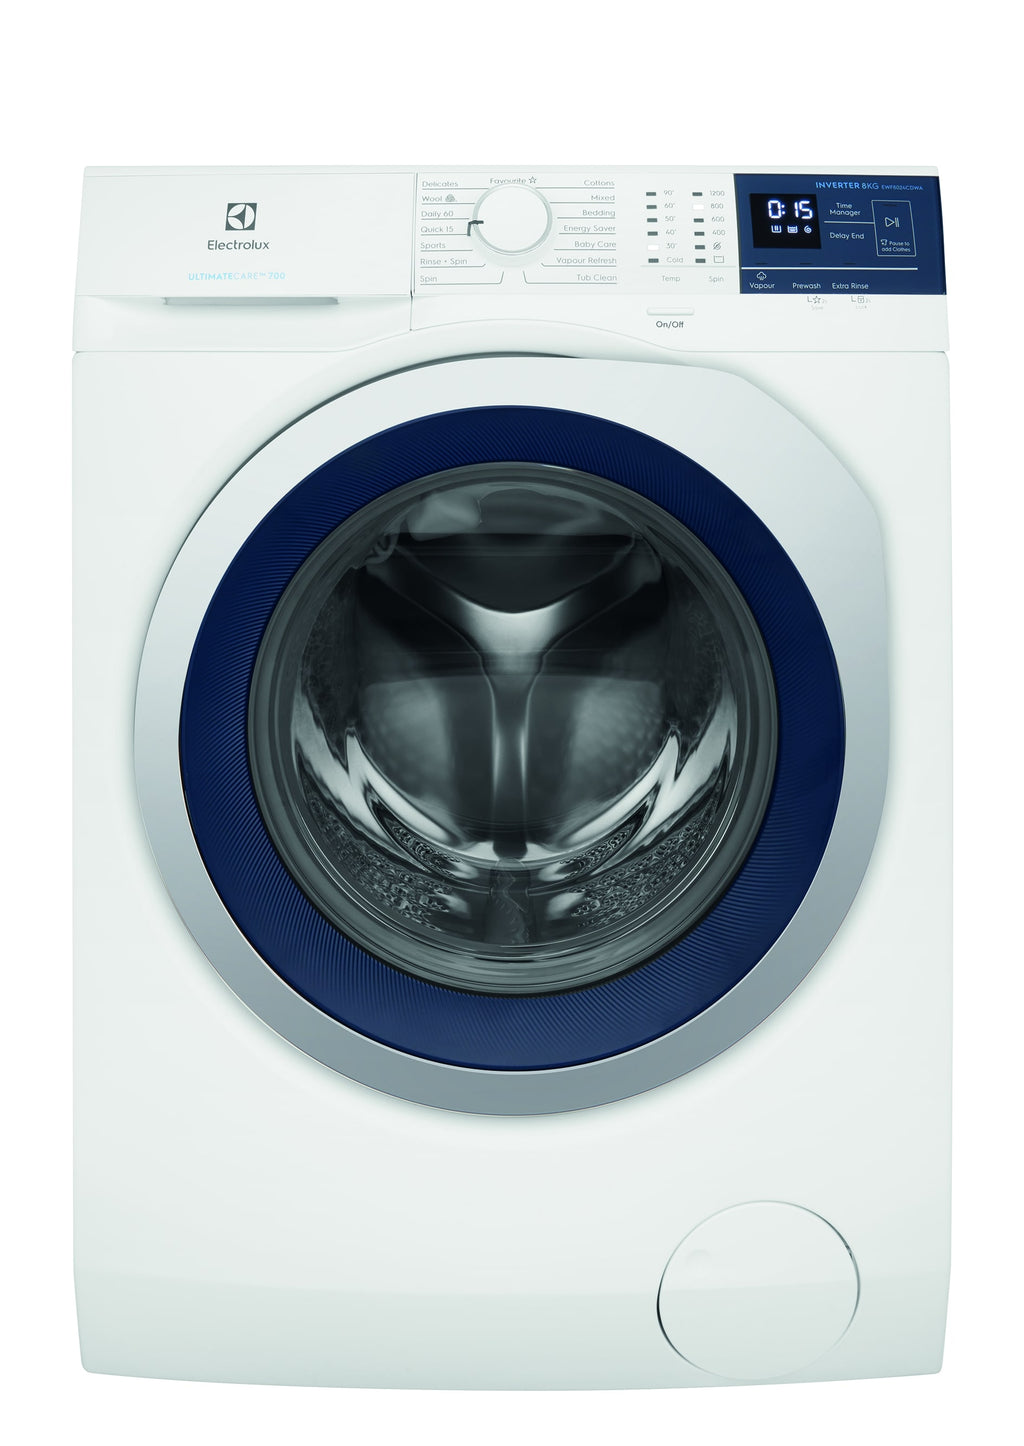 Electrolux 8KG Front Load Washer with Jetsystem